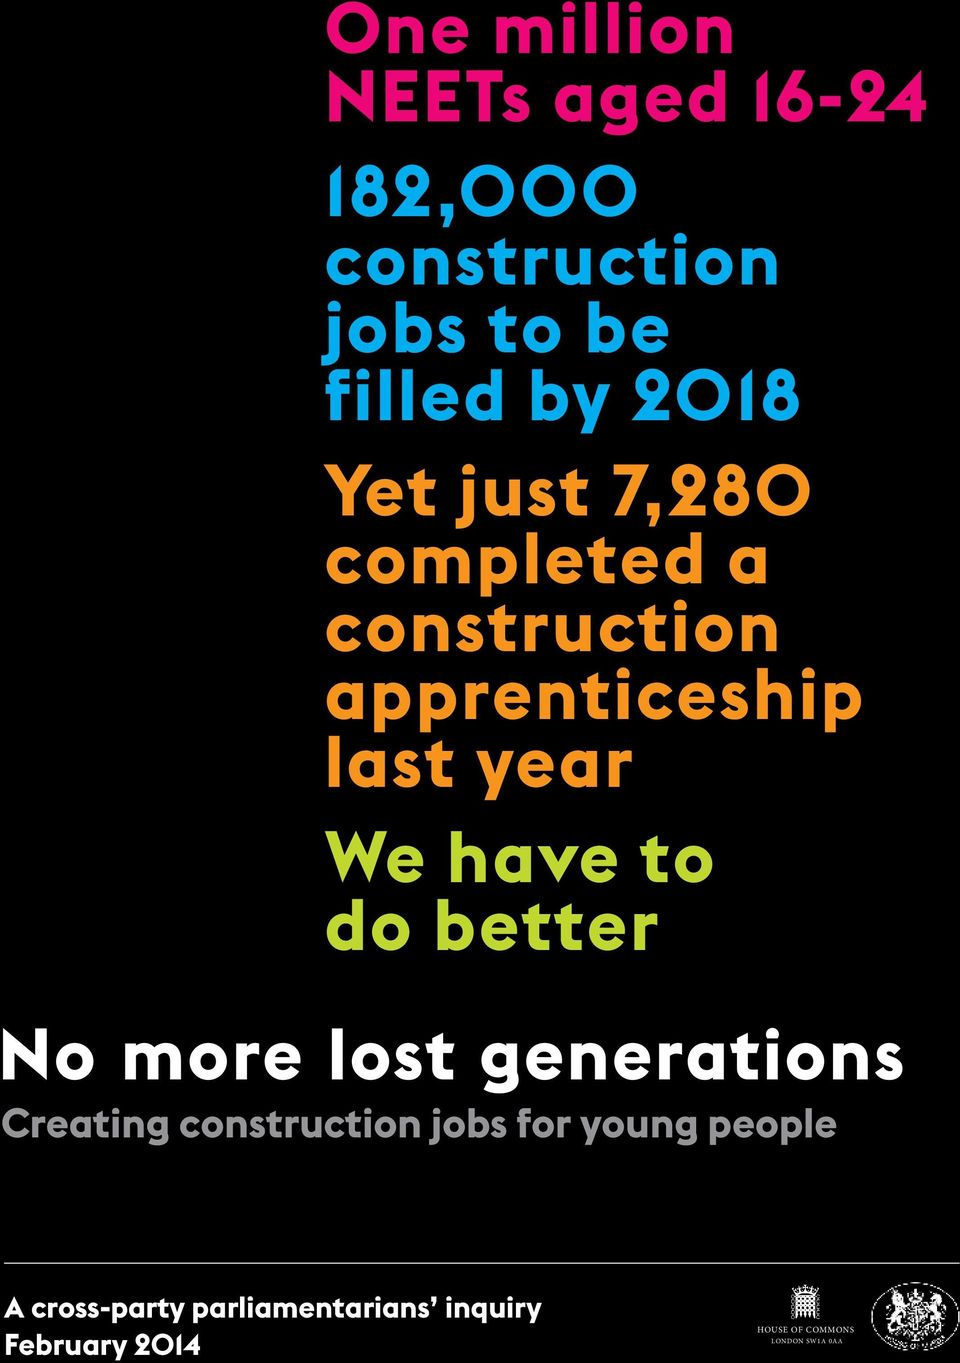 better No more lost generations Creating construction jobs for young people A